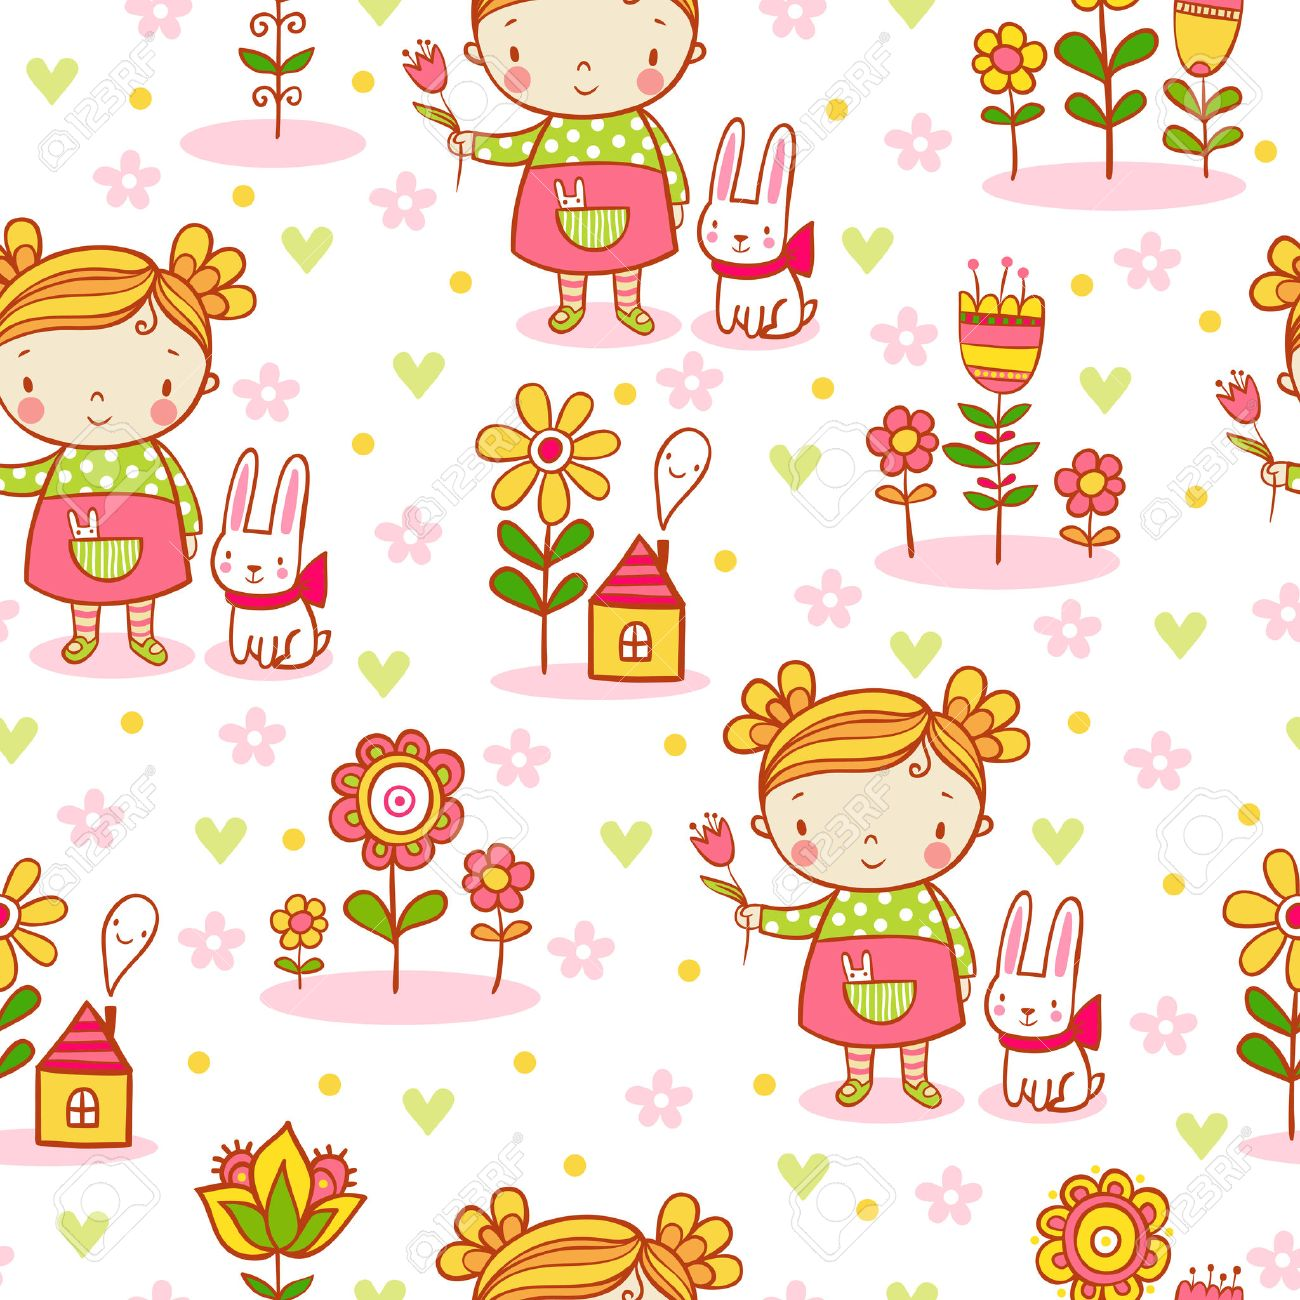 background in stylish colors can be used for wallpapers, surface textures, pattern fills. - 52236978